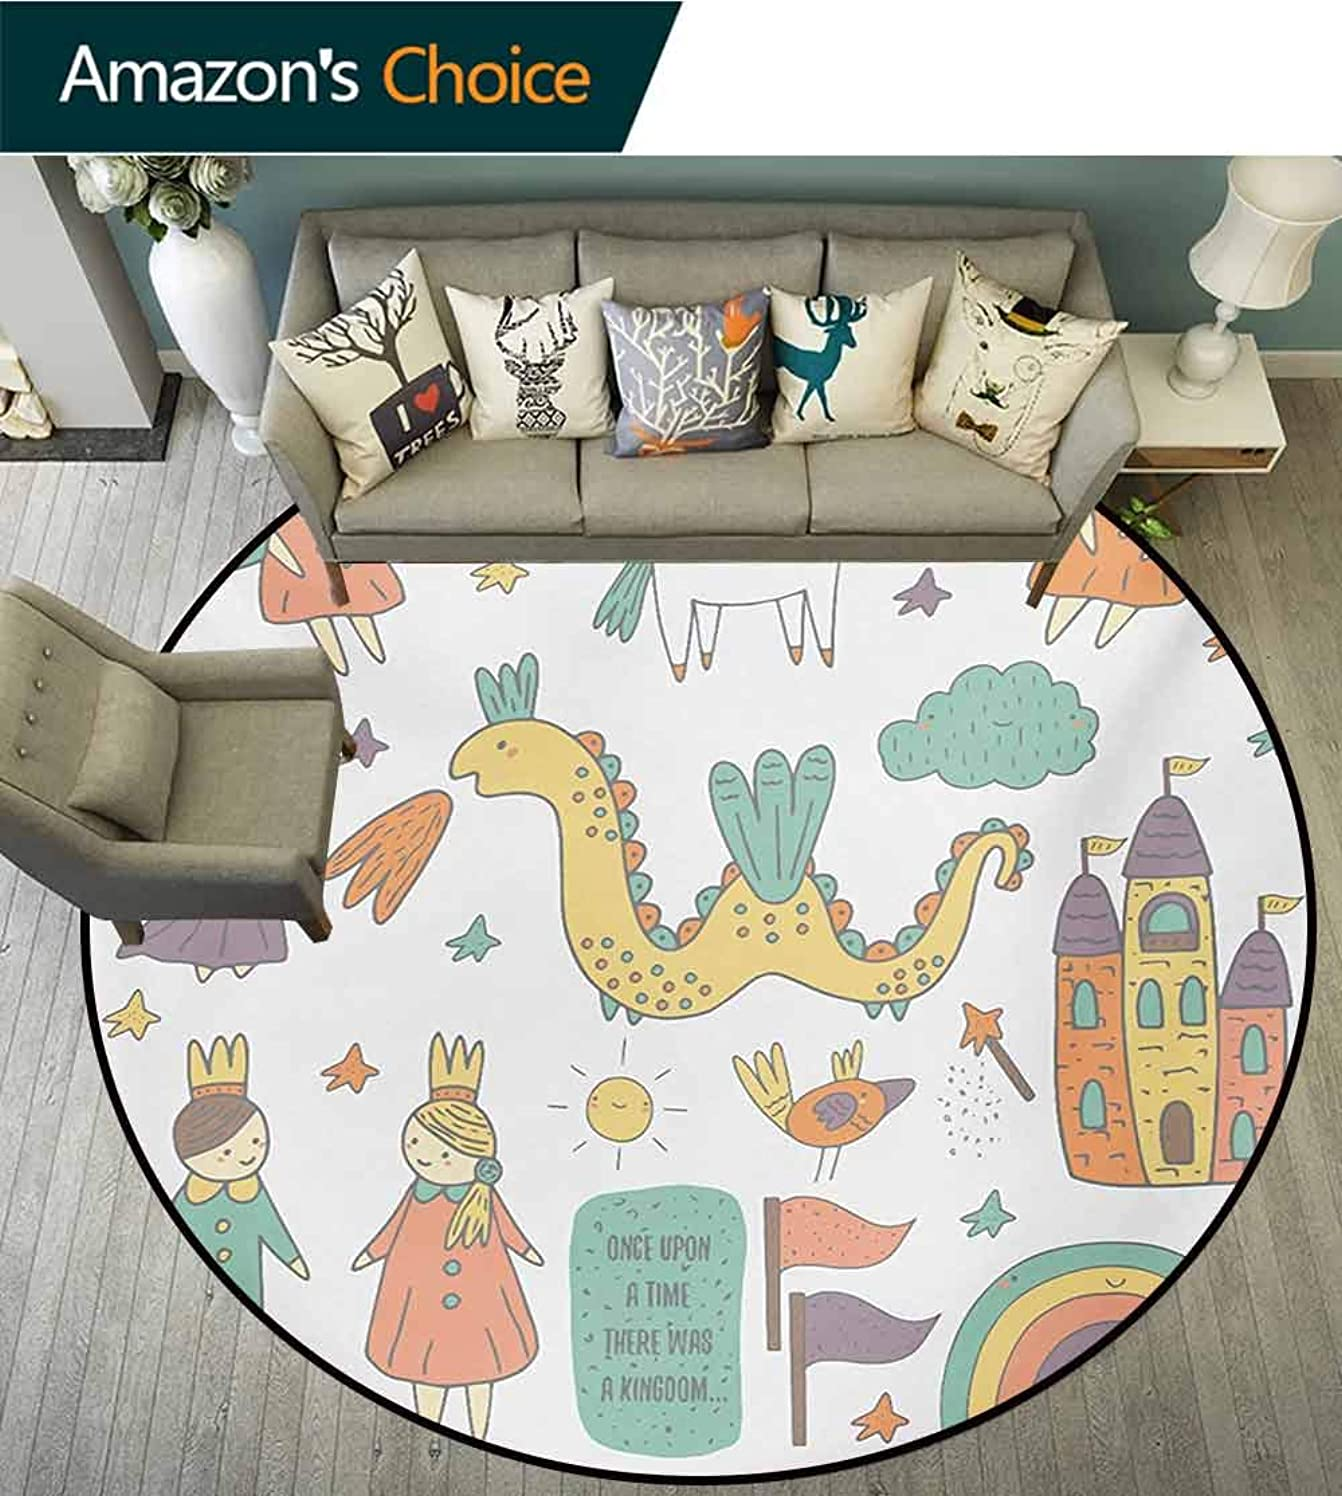 RUGSMAT Fantasy Non-Slip Area Rug Pad Round,Doodle Style Dragon Fairies Royalty and Wizard Middle Ages Heroic Legend Elements Protect Floors While Securing Rug Making Vacuuming,Diameter-51 Inch